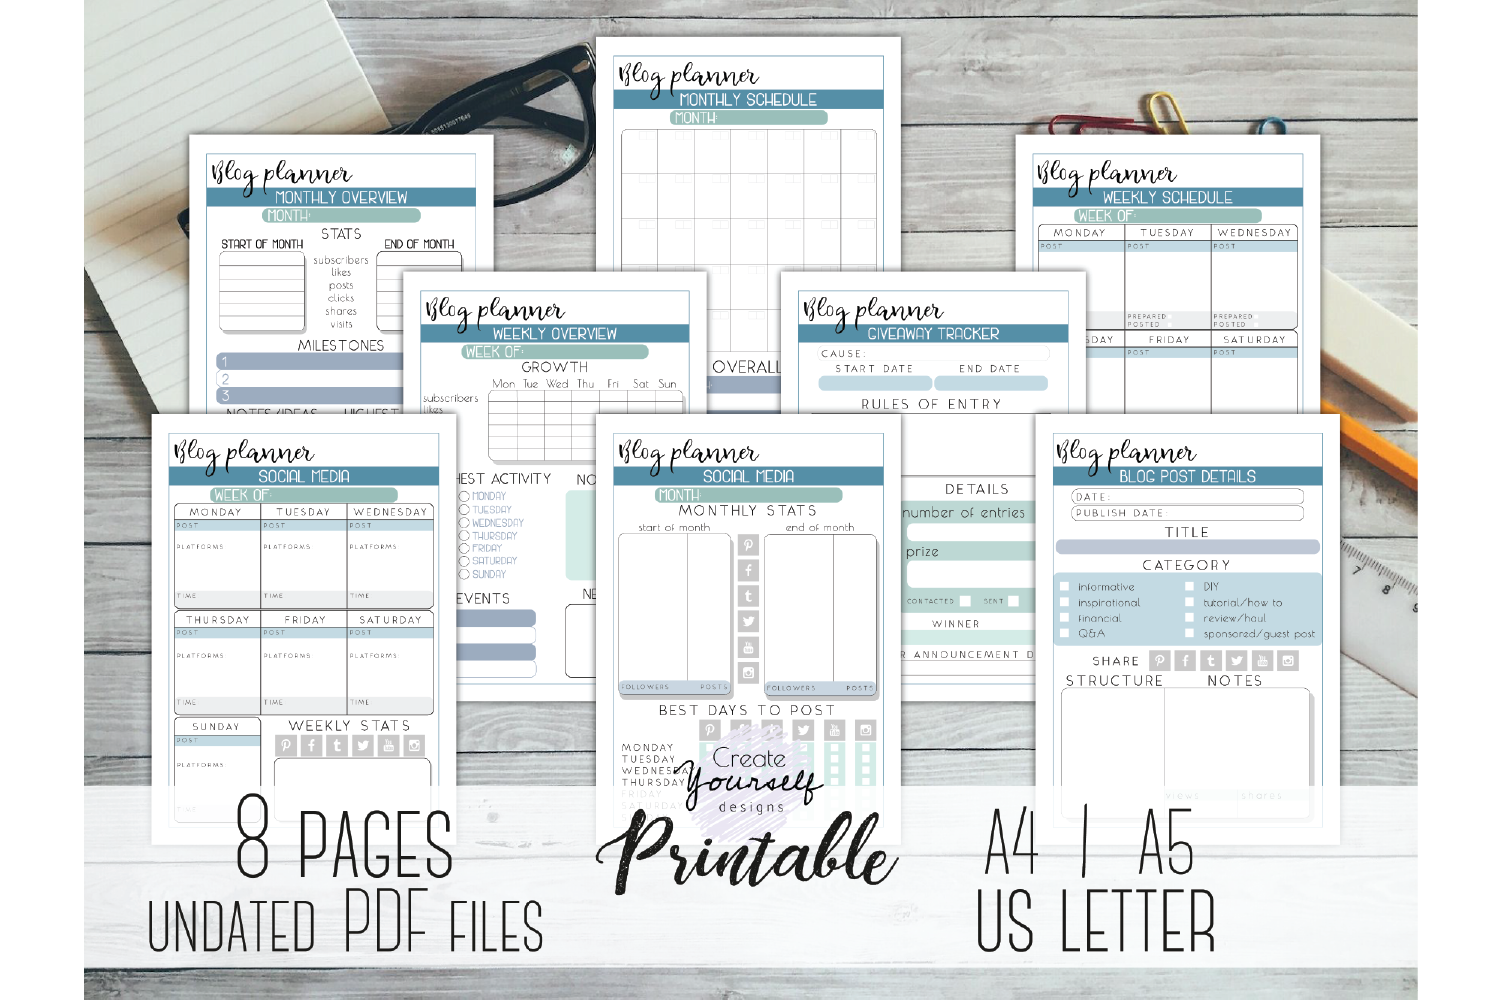 image about Blog Planner Printable named Website planner printable - social media tracker, small business system